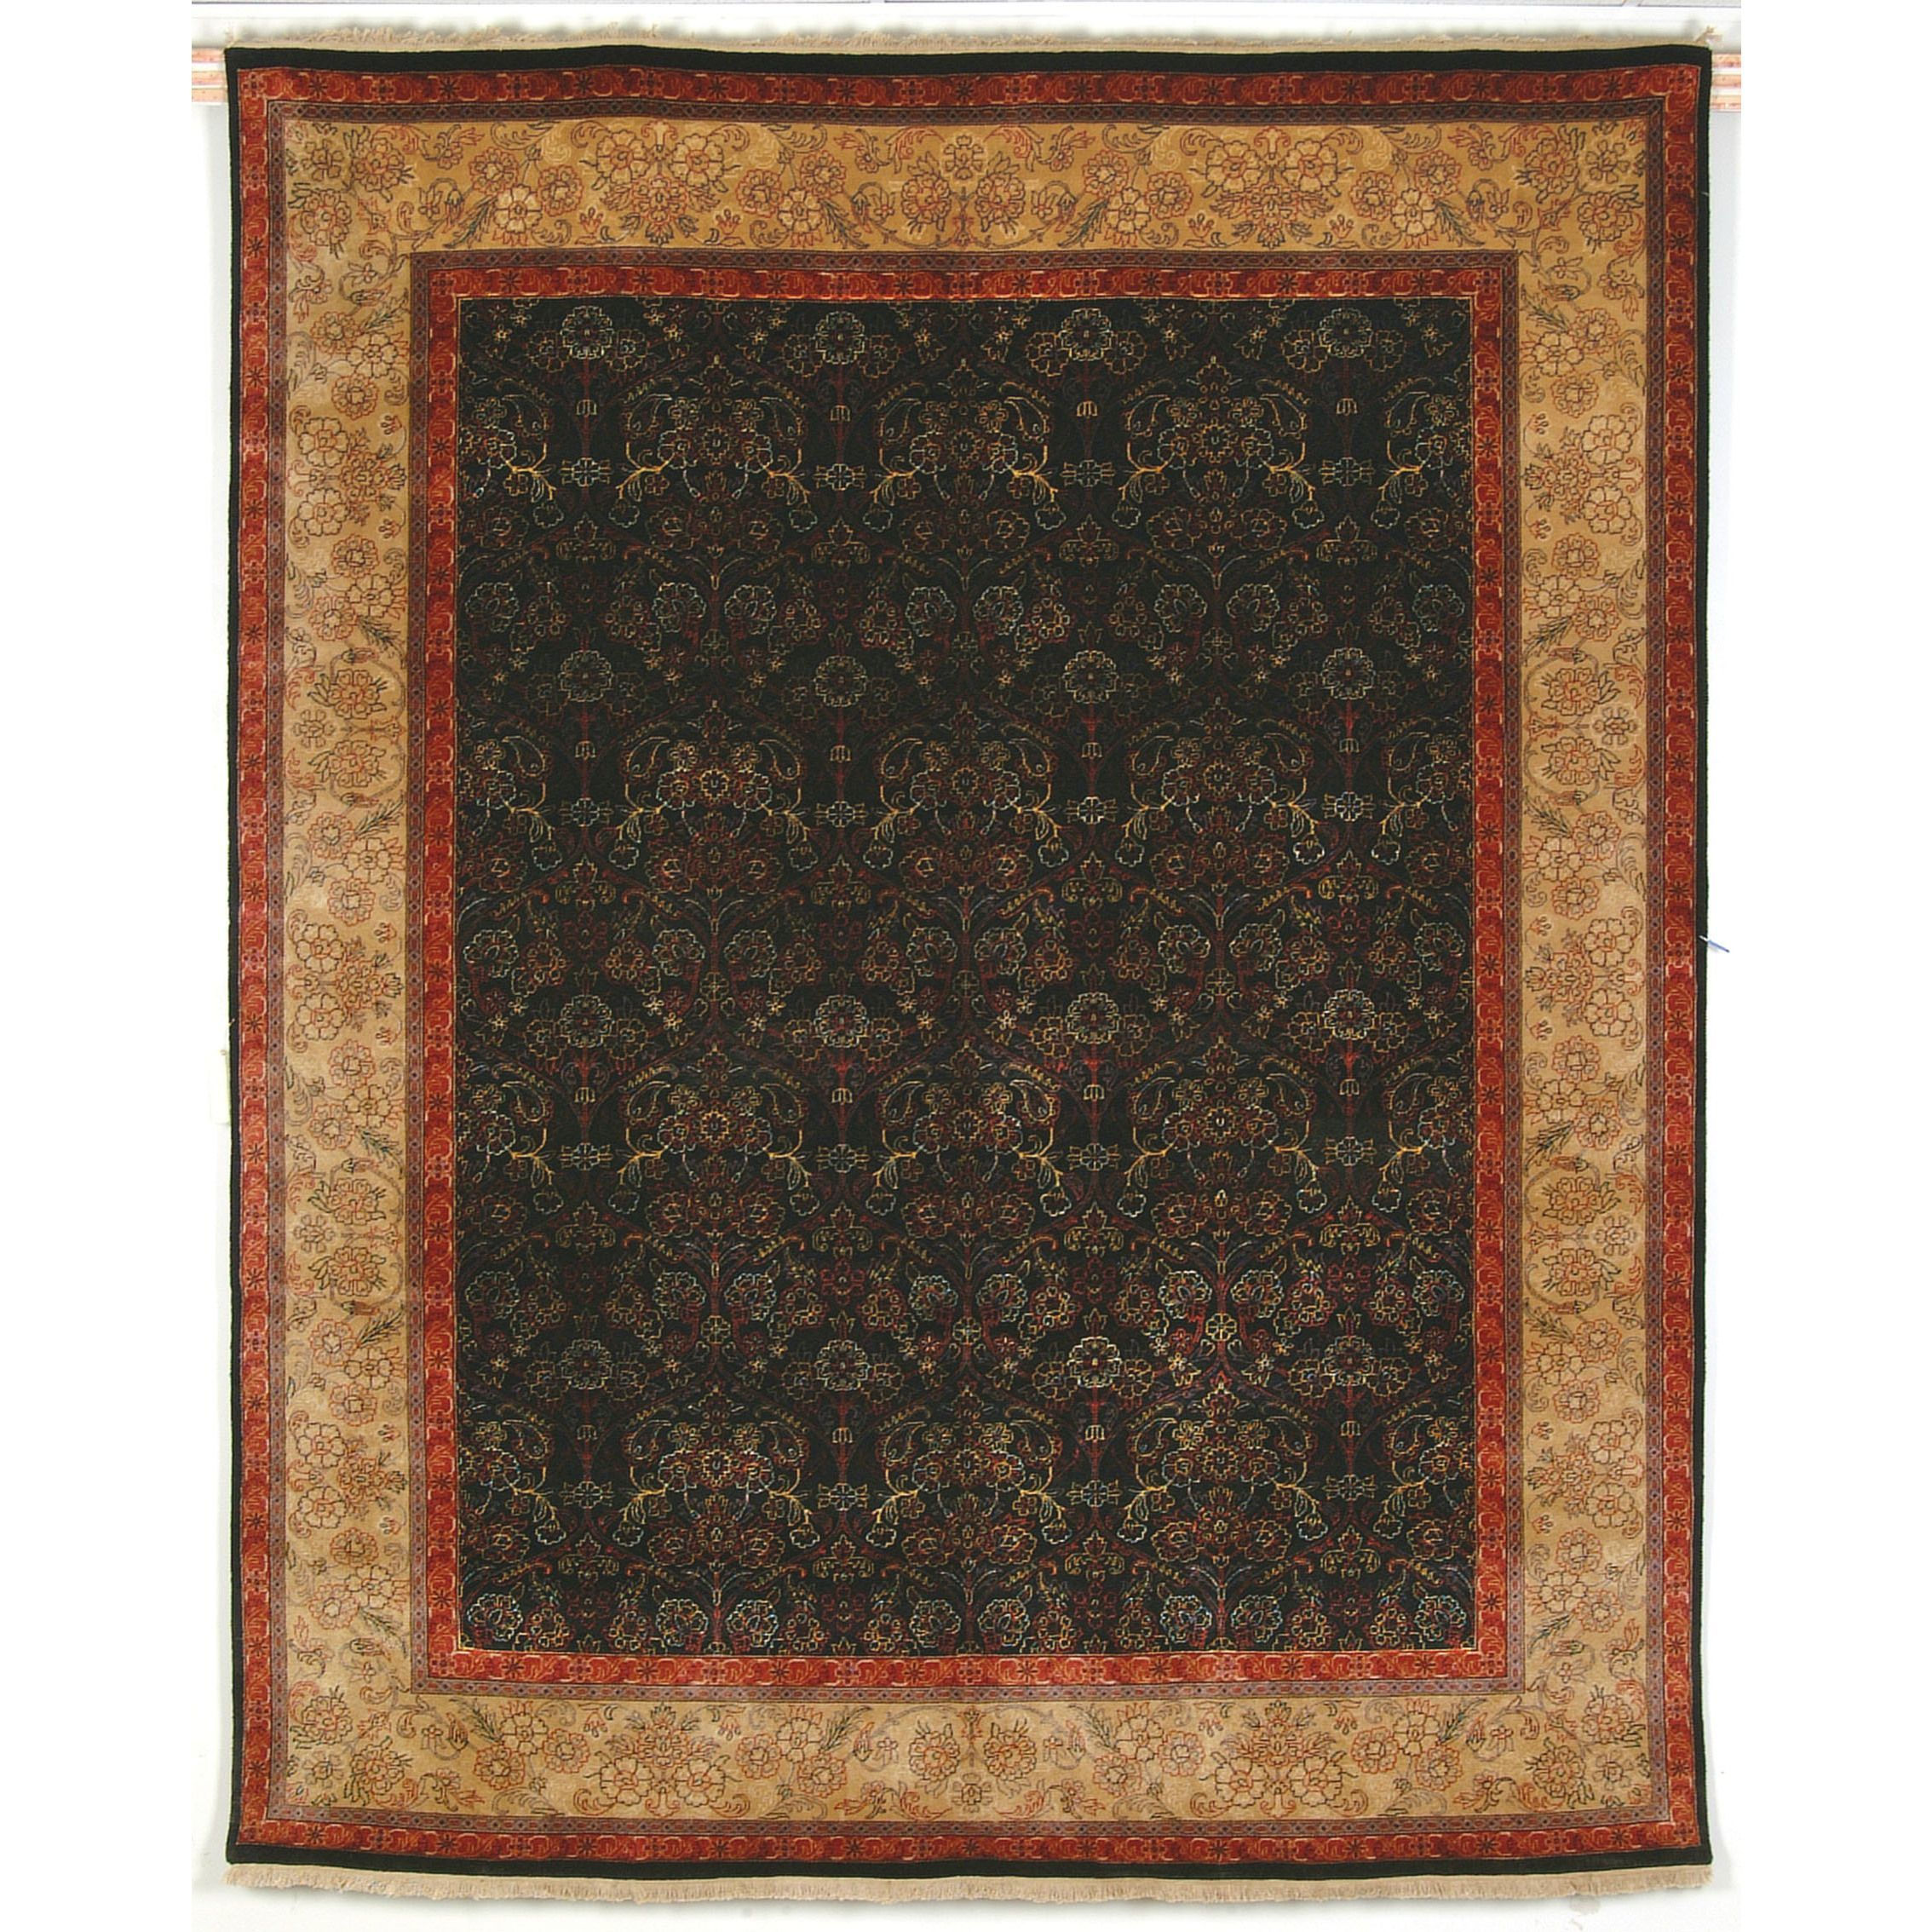 vintage rug oulton plain persian rugs designs accessories gold home furniture in and timothy ts products black